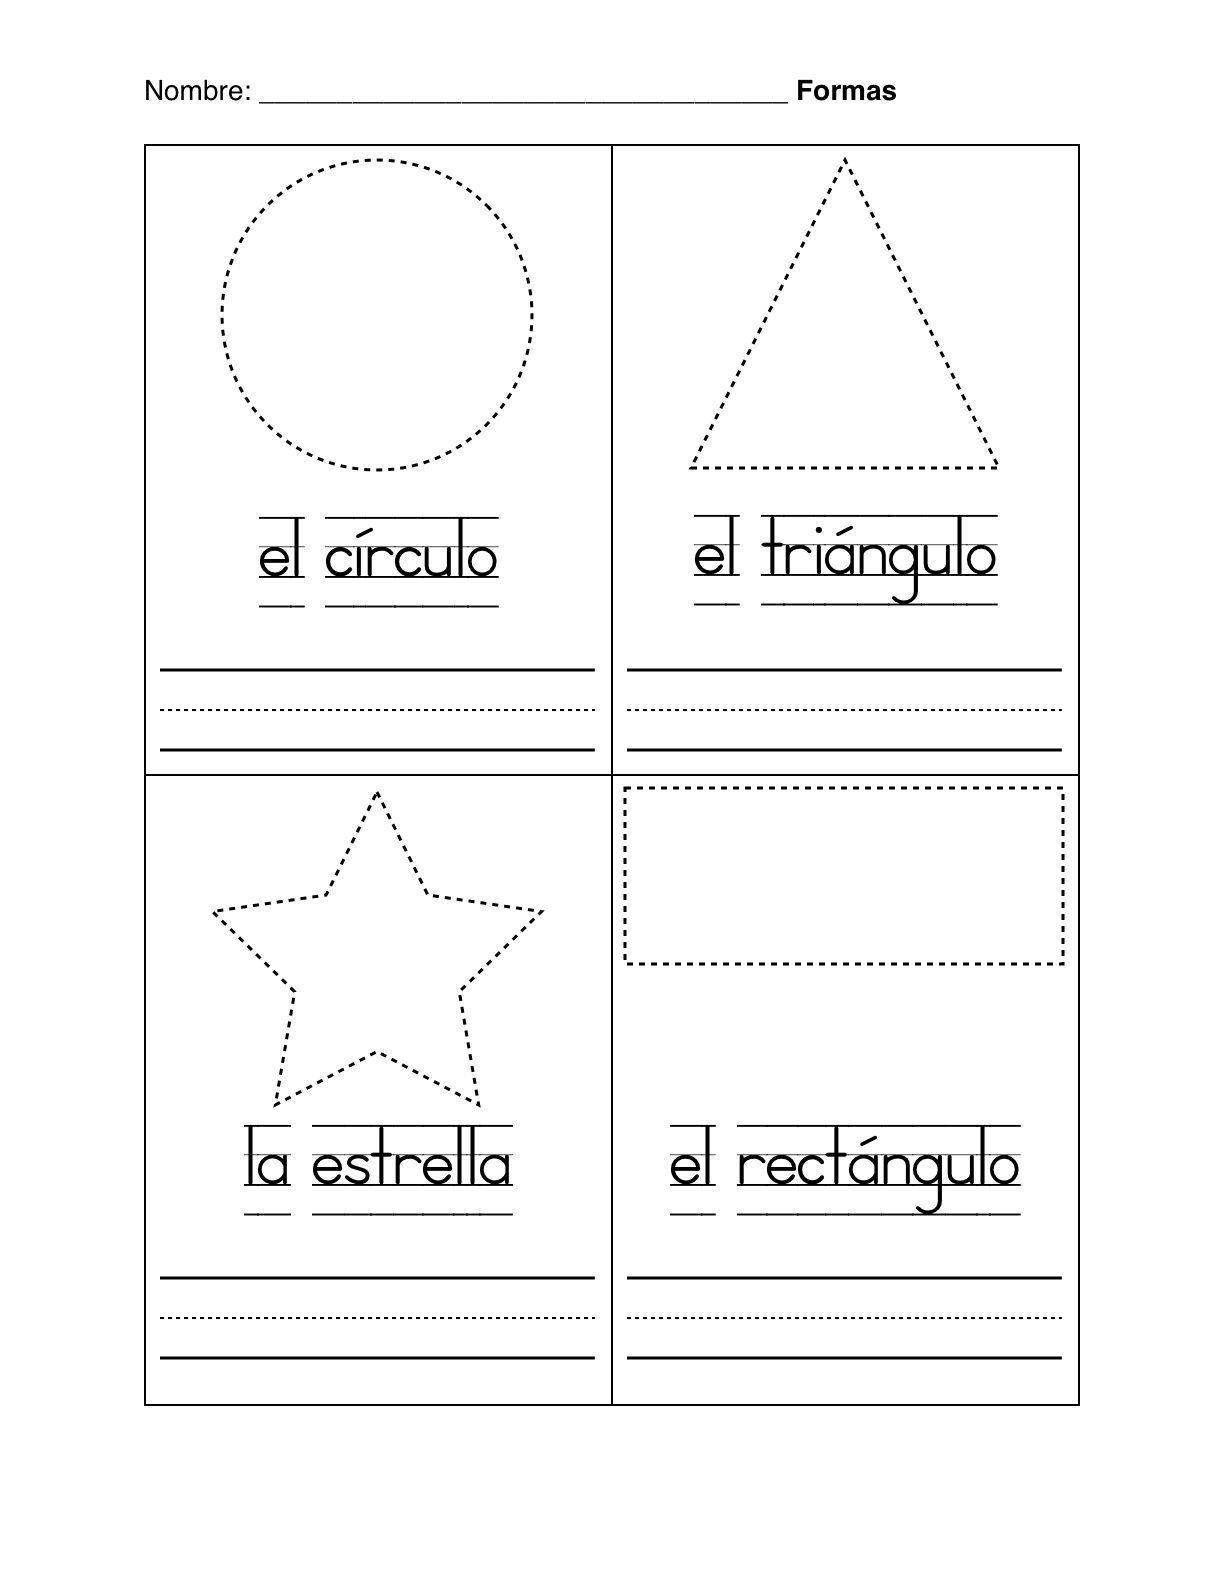 Spanish Worksheets For Kindergarten | Basic Shapes In Spanish